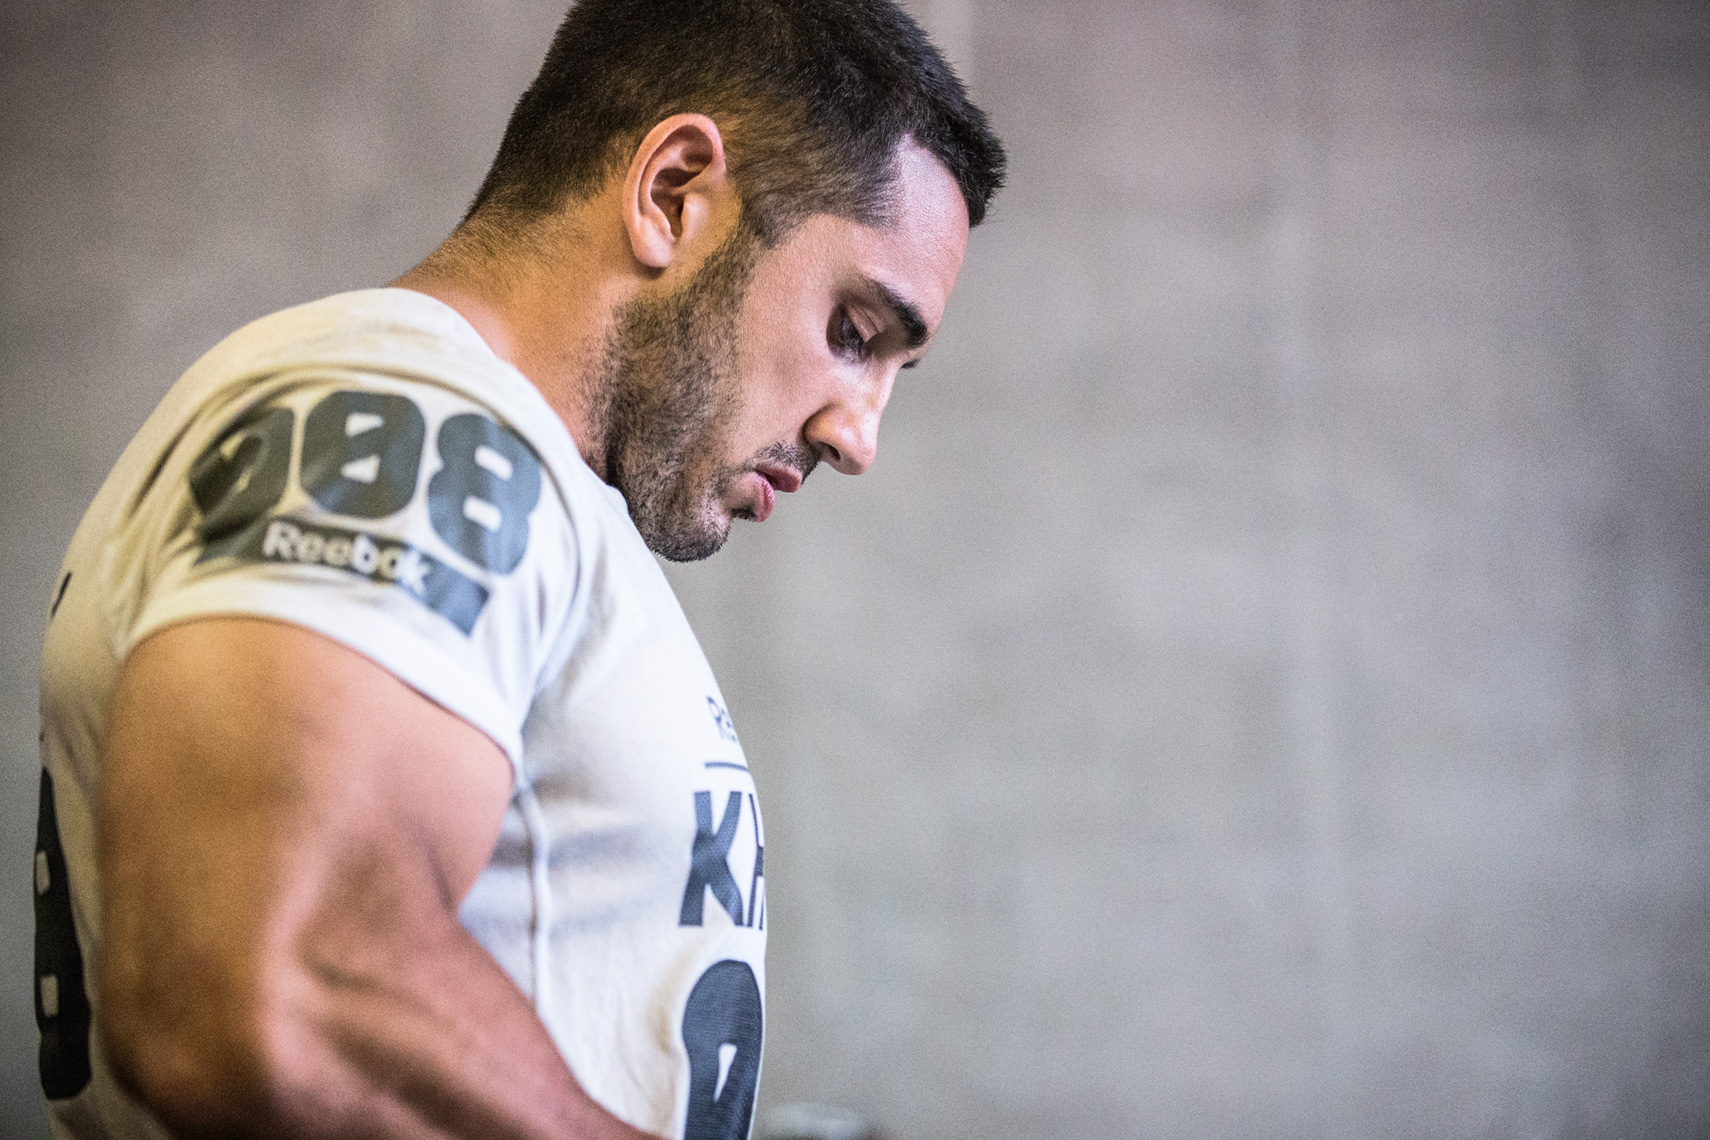 Los Angeles Sports Photography, Michael Brian, Jason Khalipa, Team USA, Reebok Crossfit Games athlete, preps for final event, Rogue, StubHub Center